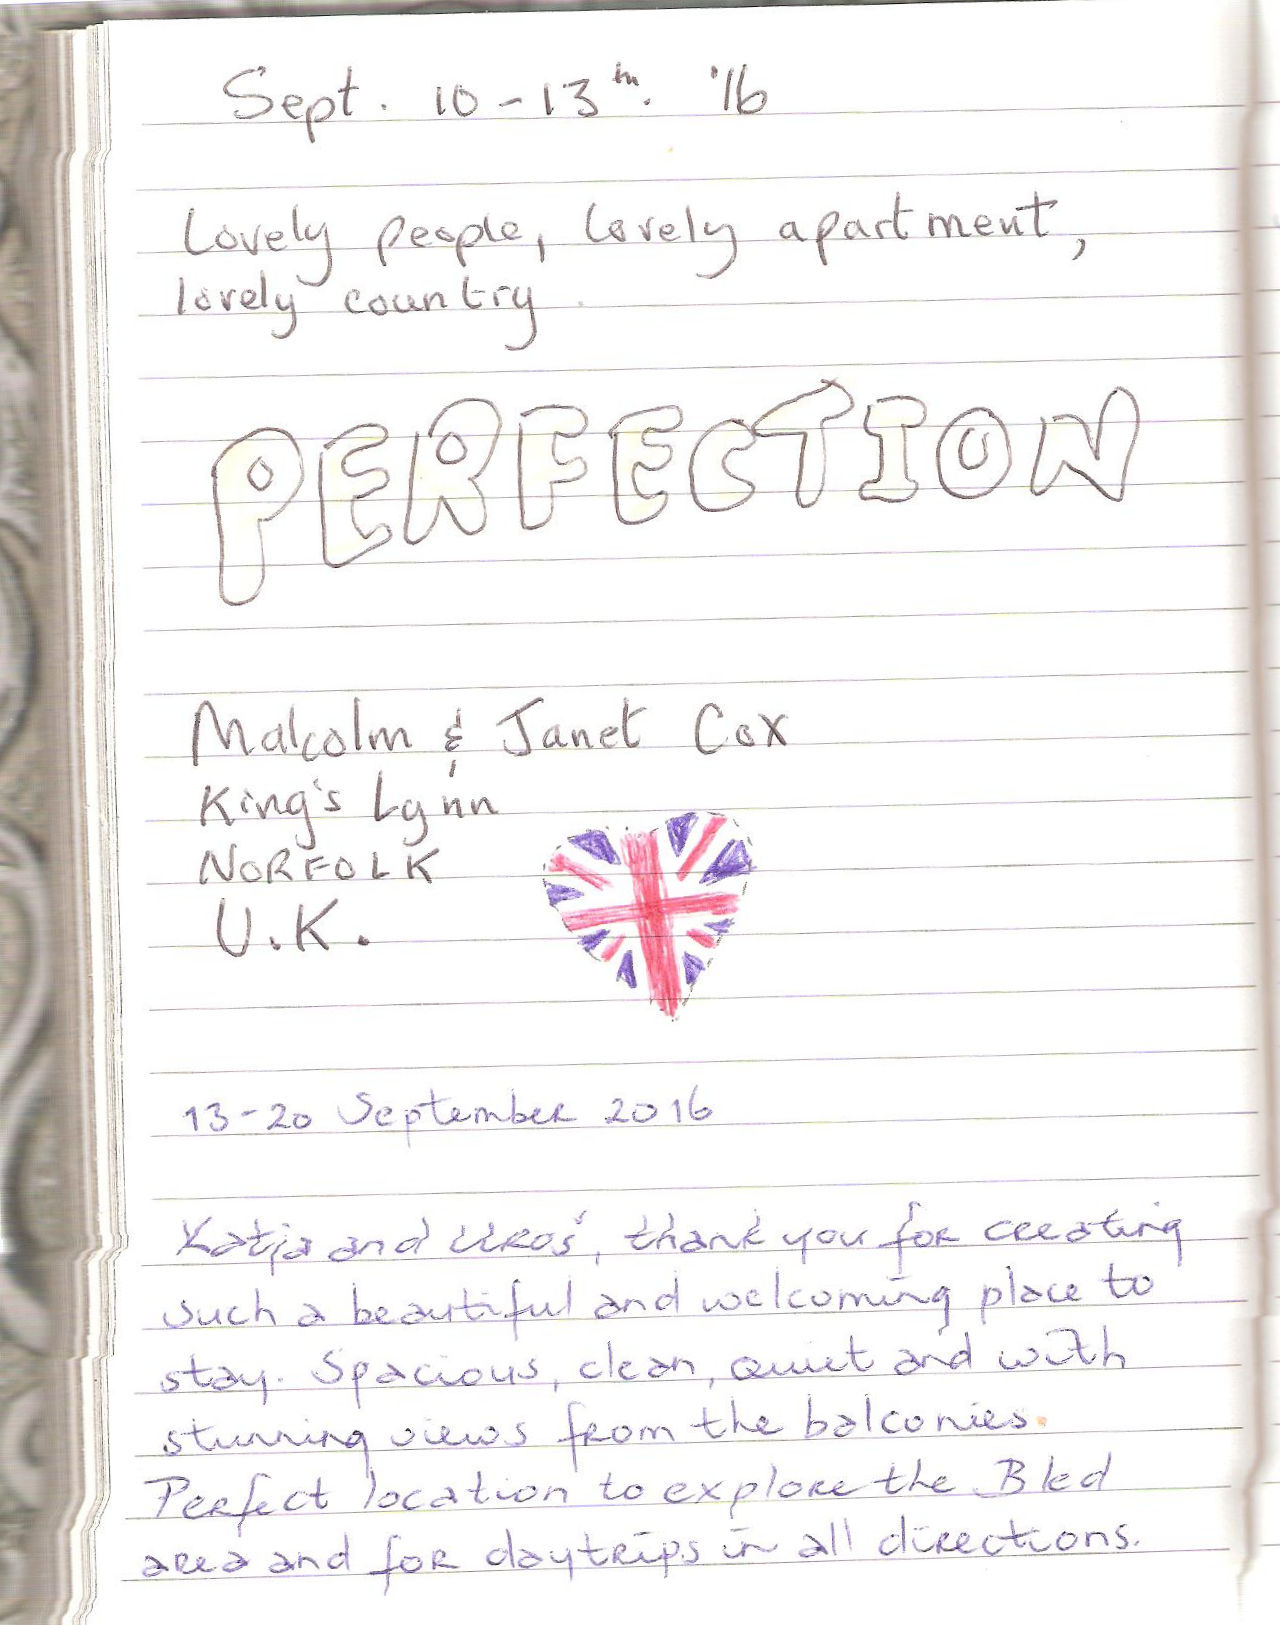 guestbook-page-062